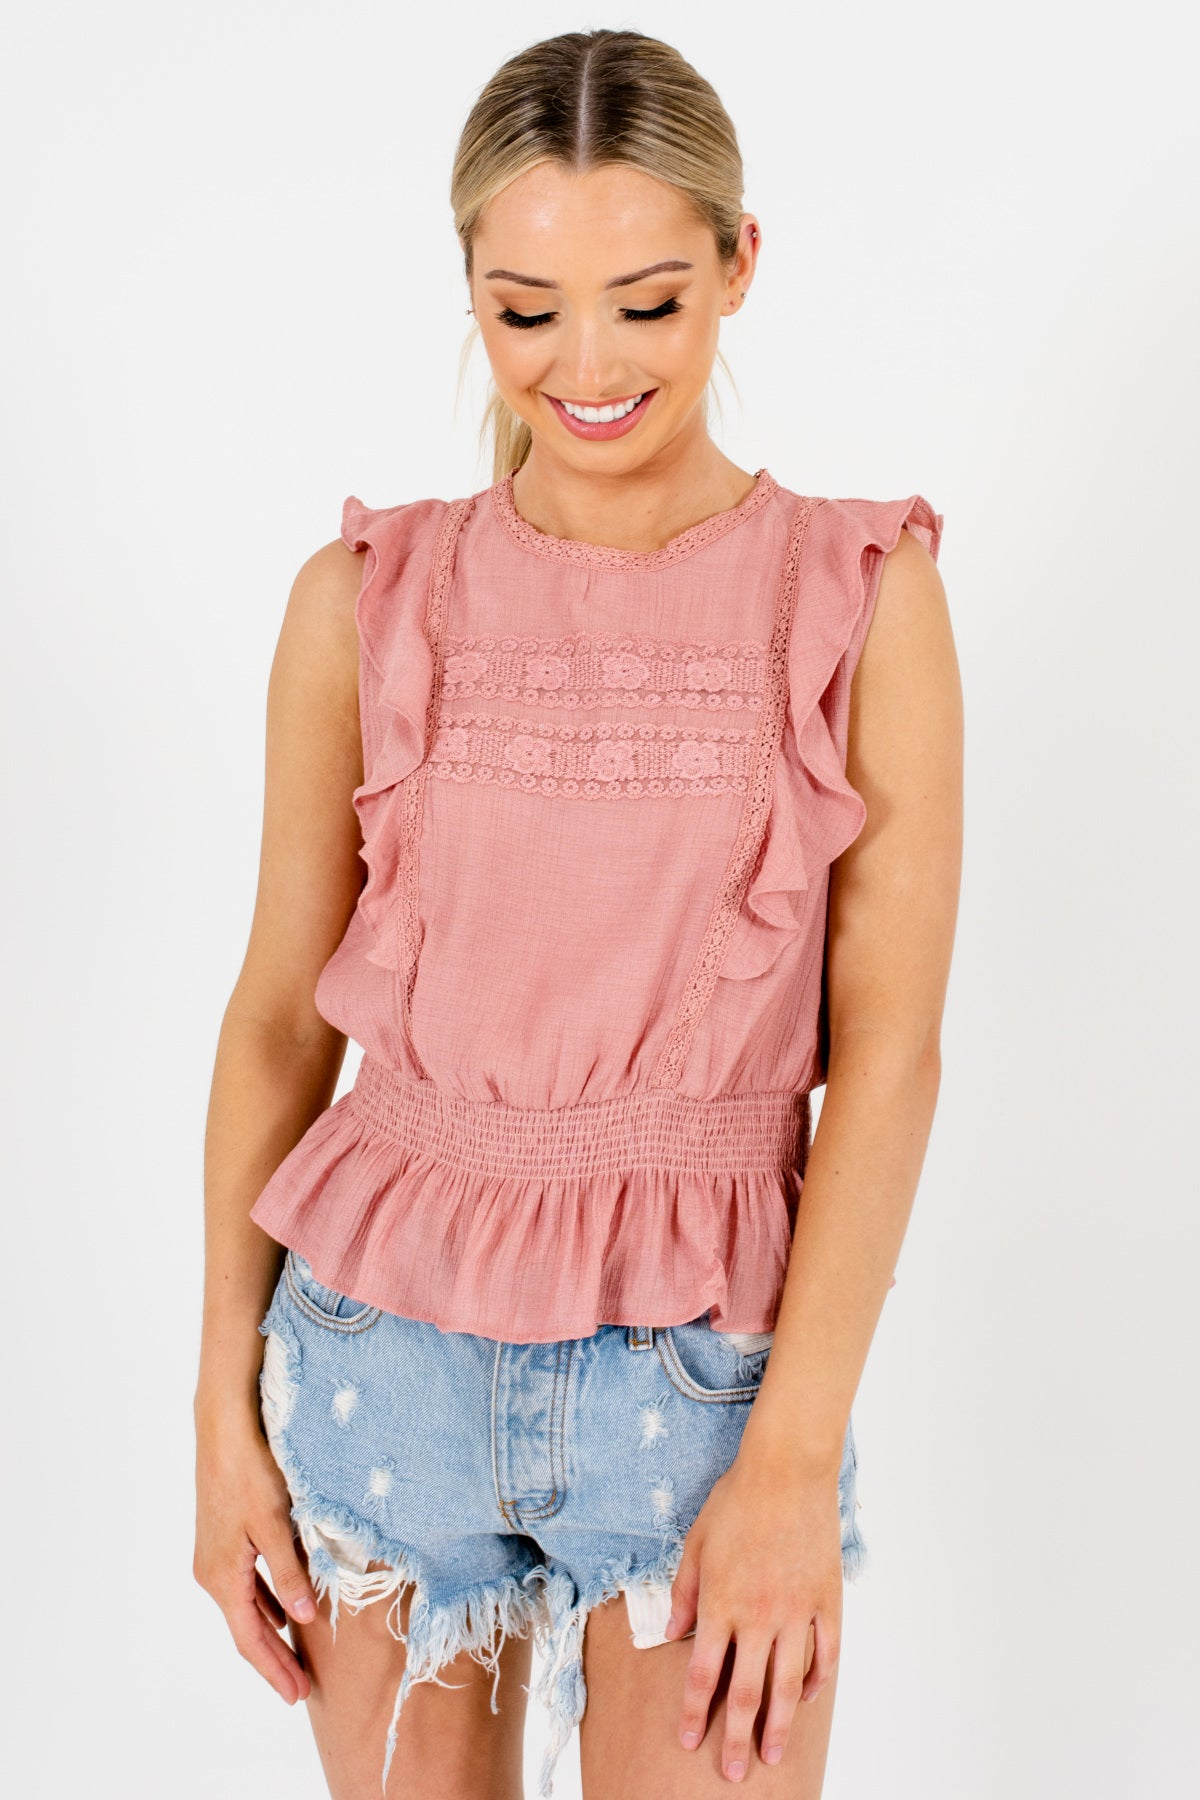 Salmon Pink Ruffle Sleeve Lace Smocked Peplum Tops for Women